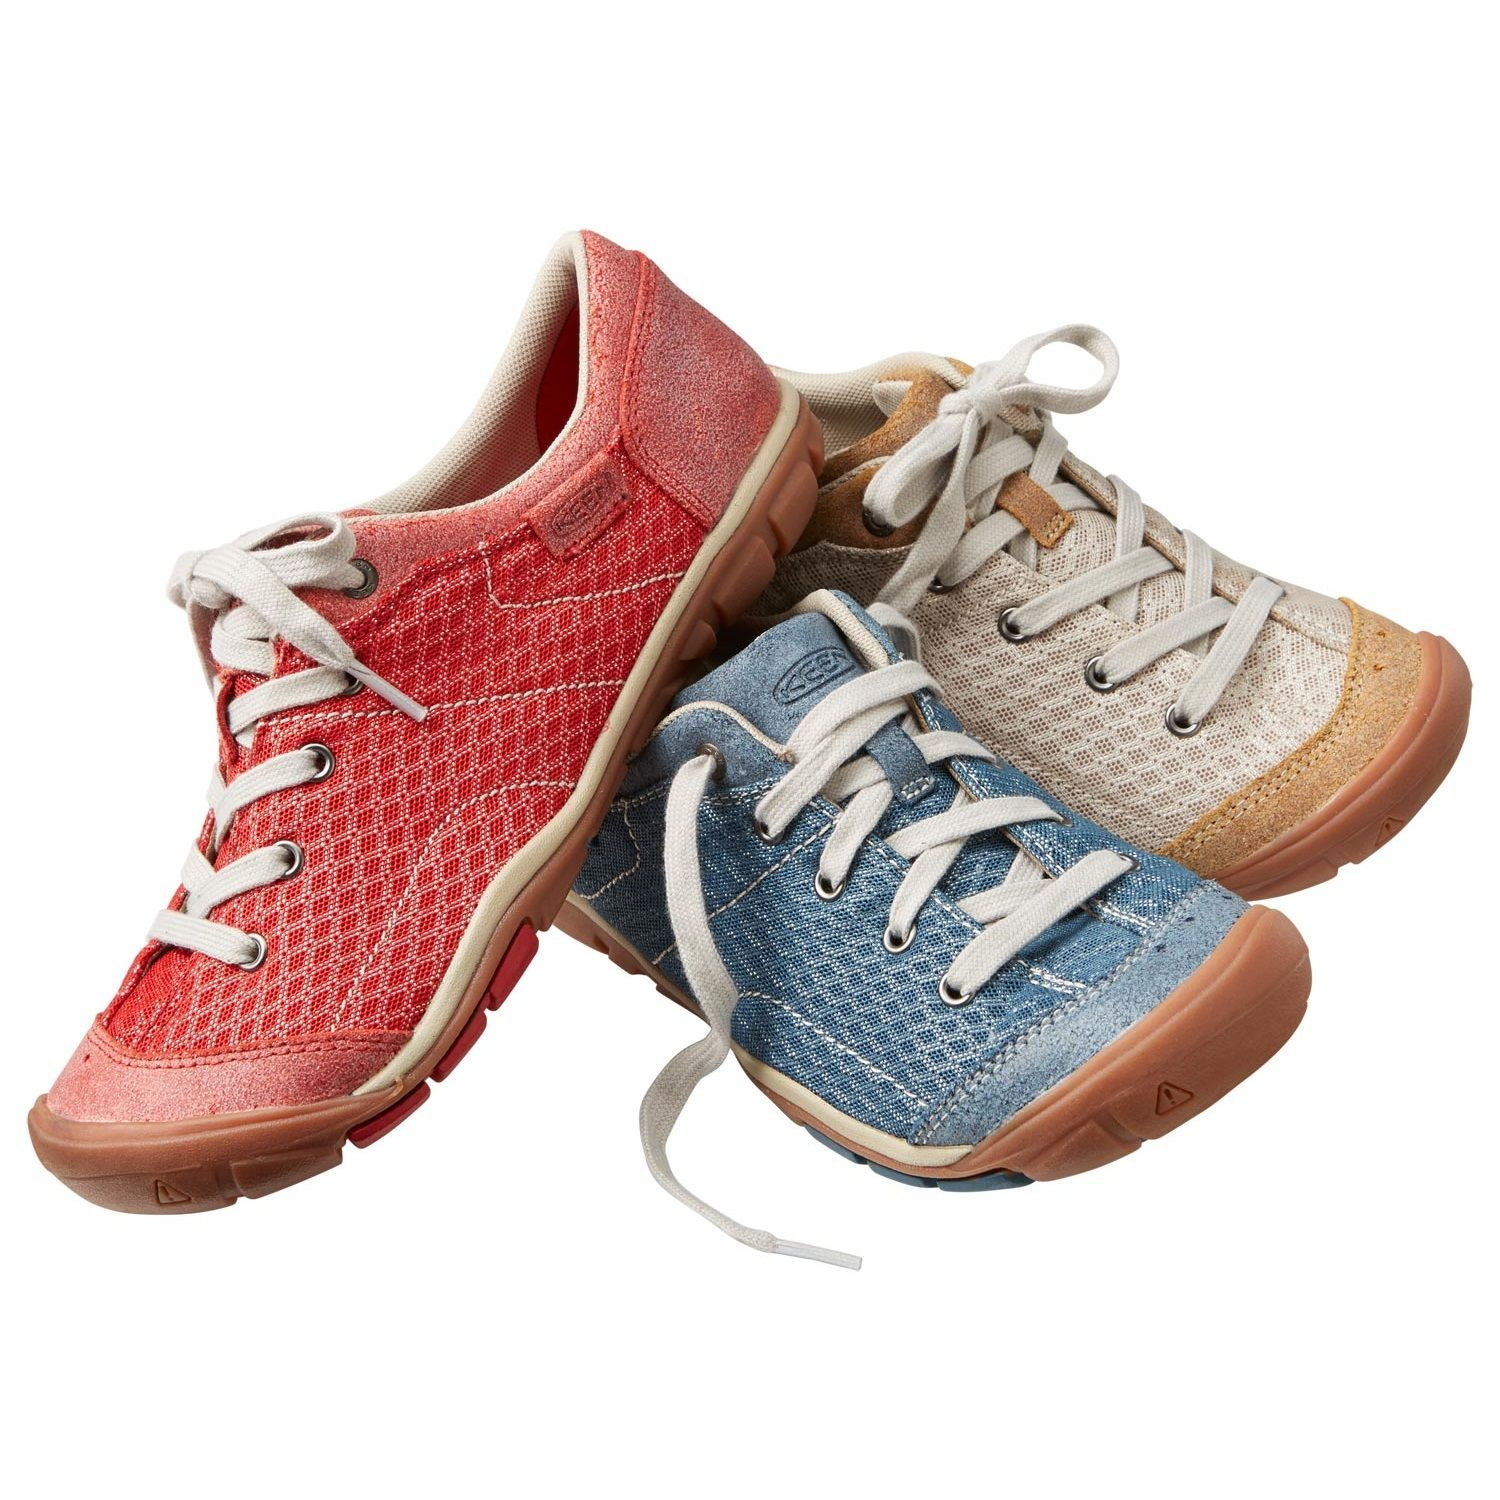 4 Eye Opening Useful Tips Shoes Vintage Style Puma Shoes Tan Shoes Hipster Sunglasses Leather Shoes Advertising R Walking Shoes Women Keen Shoes Lace Up Shoes